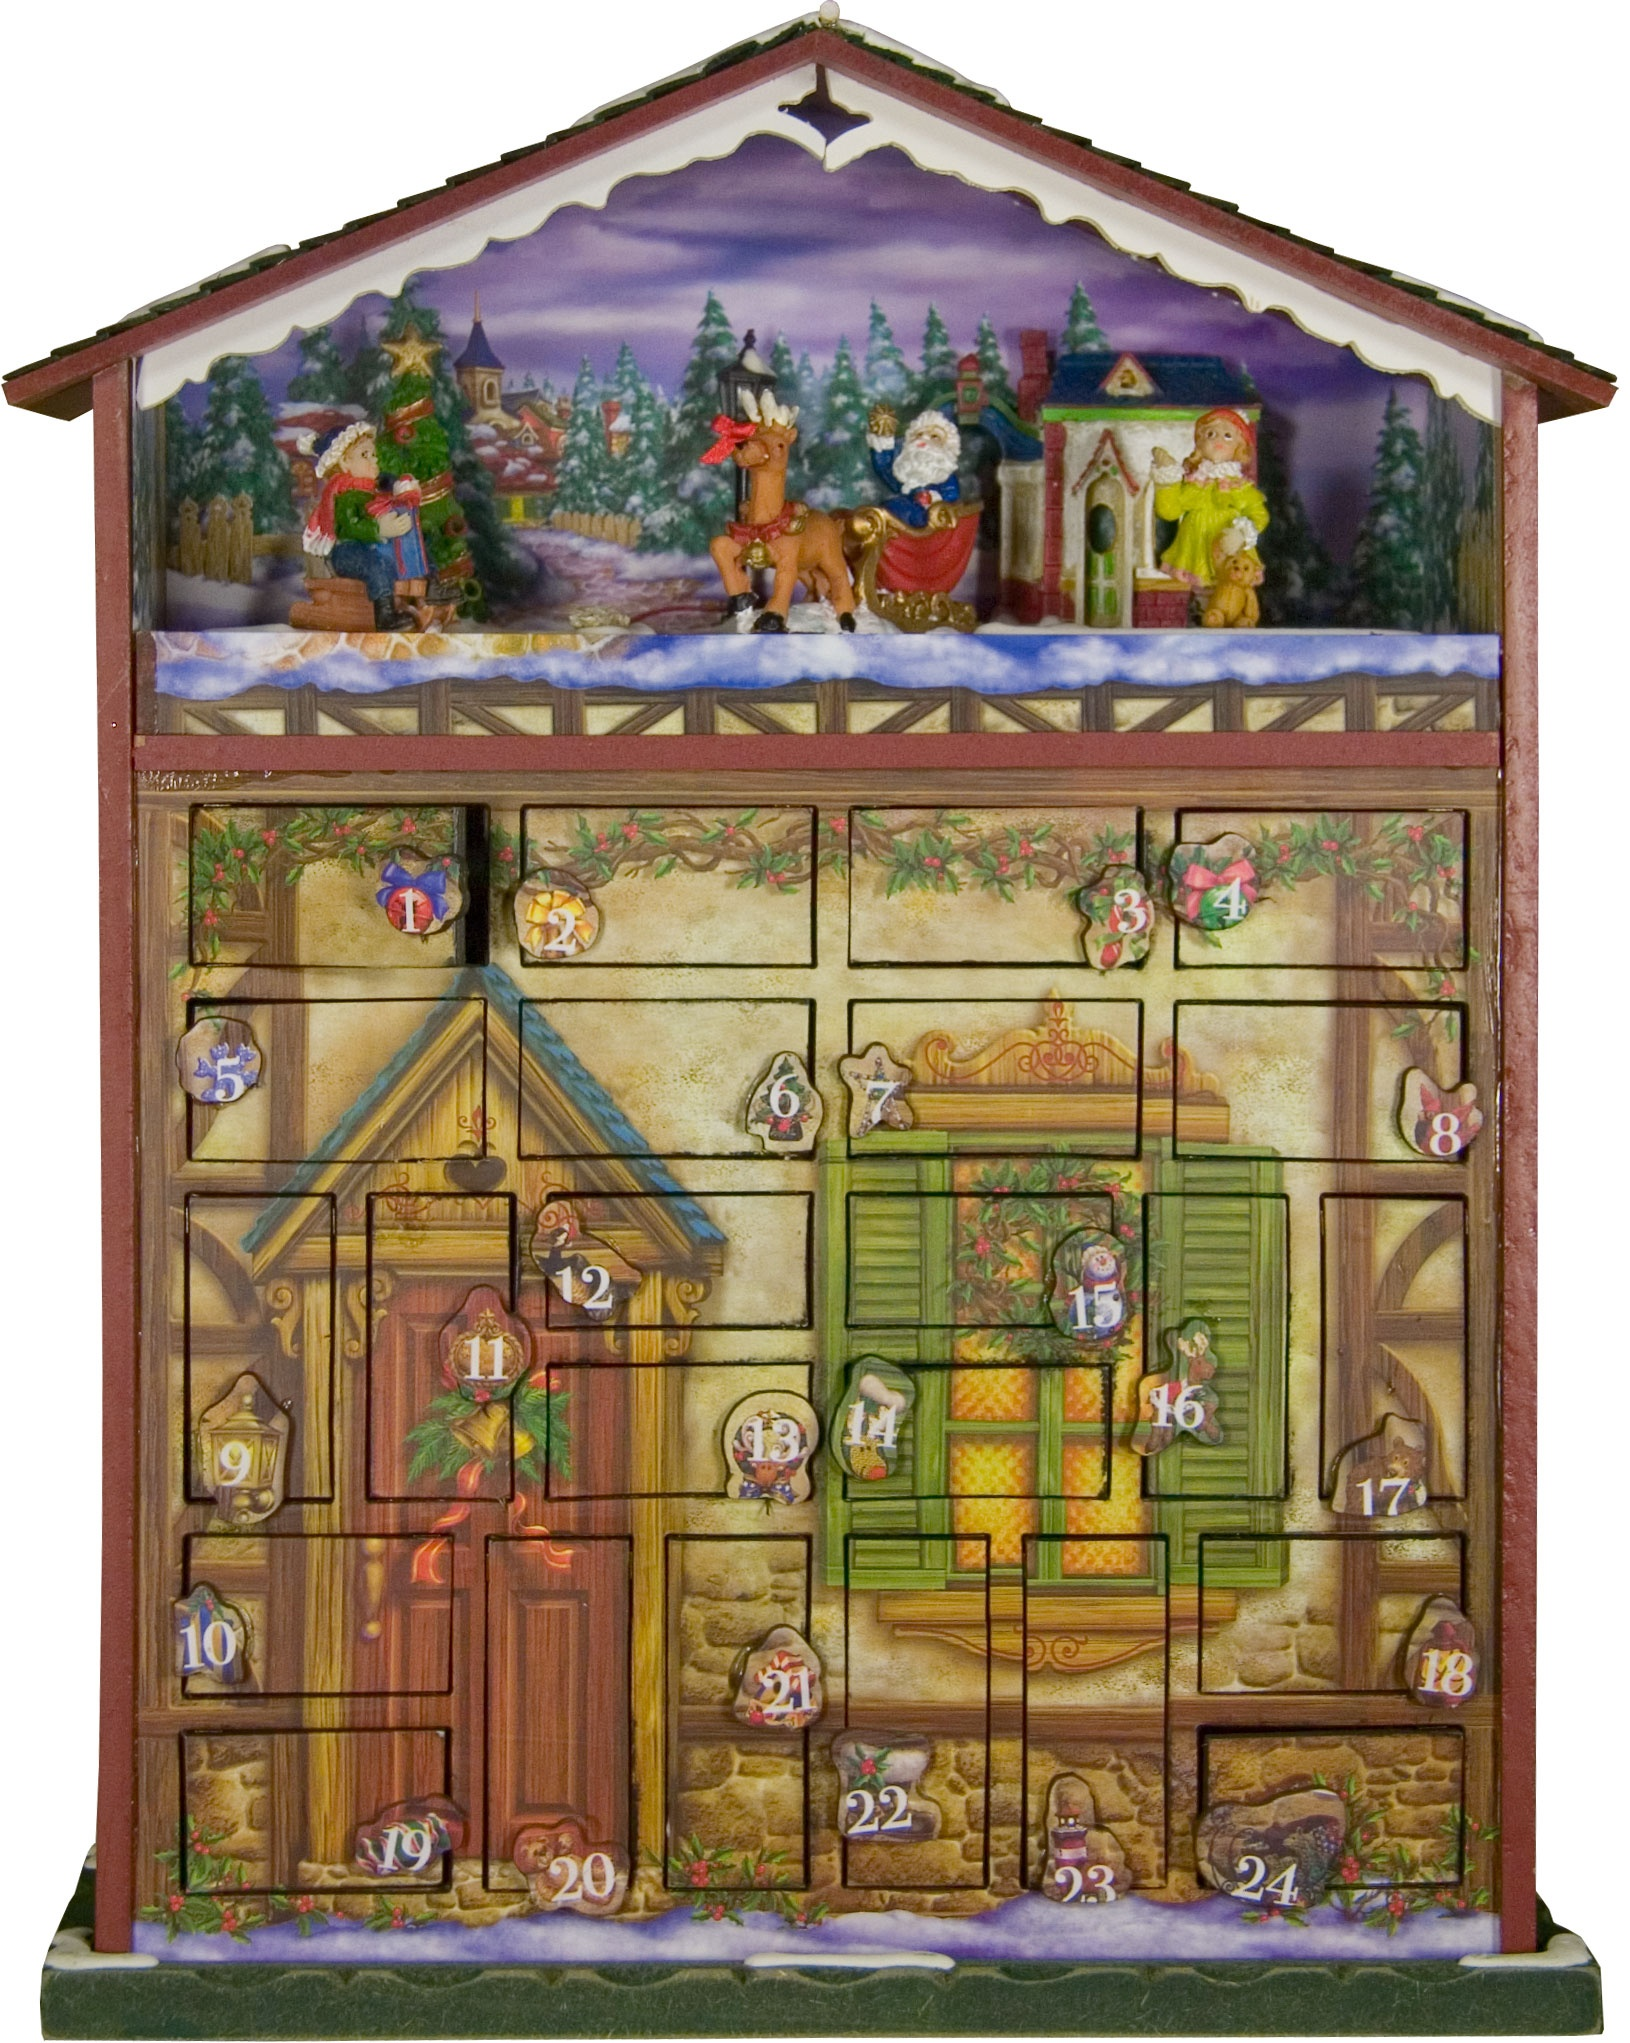 24 Days of Christmas Wooden Musical House